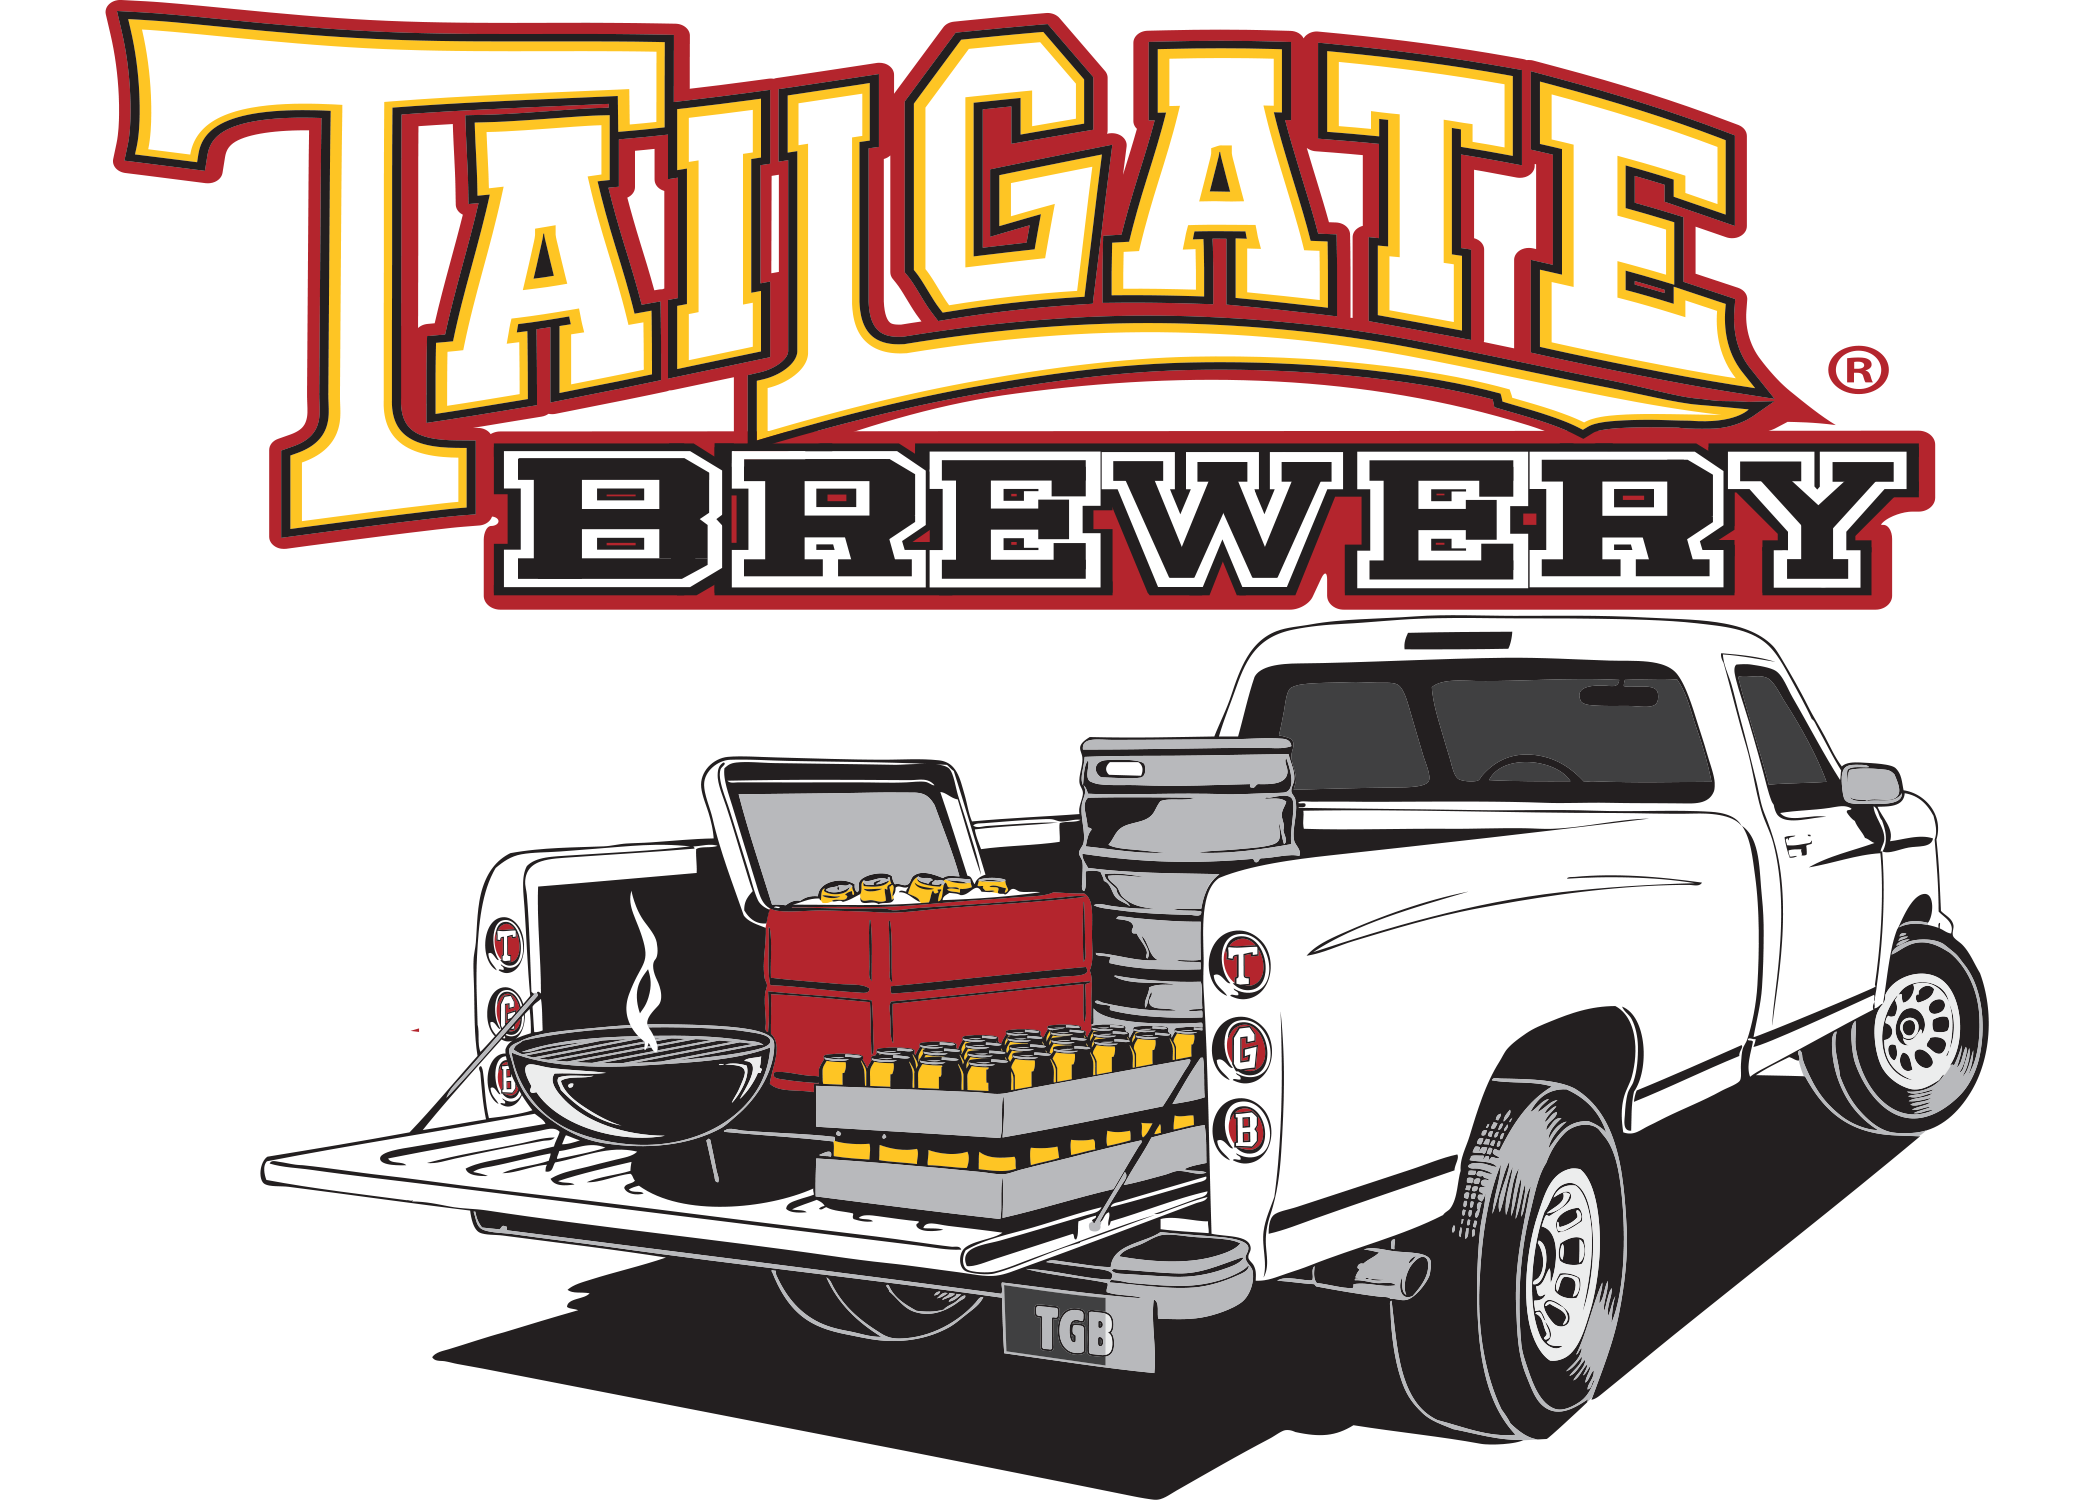 TailGate Brewery Logo